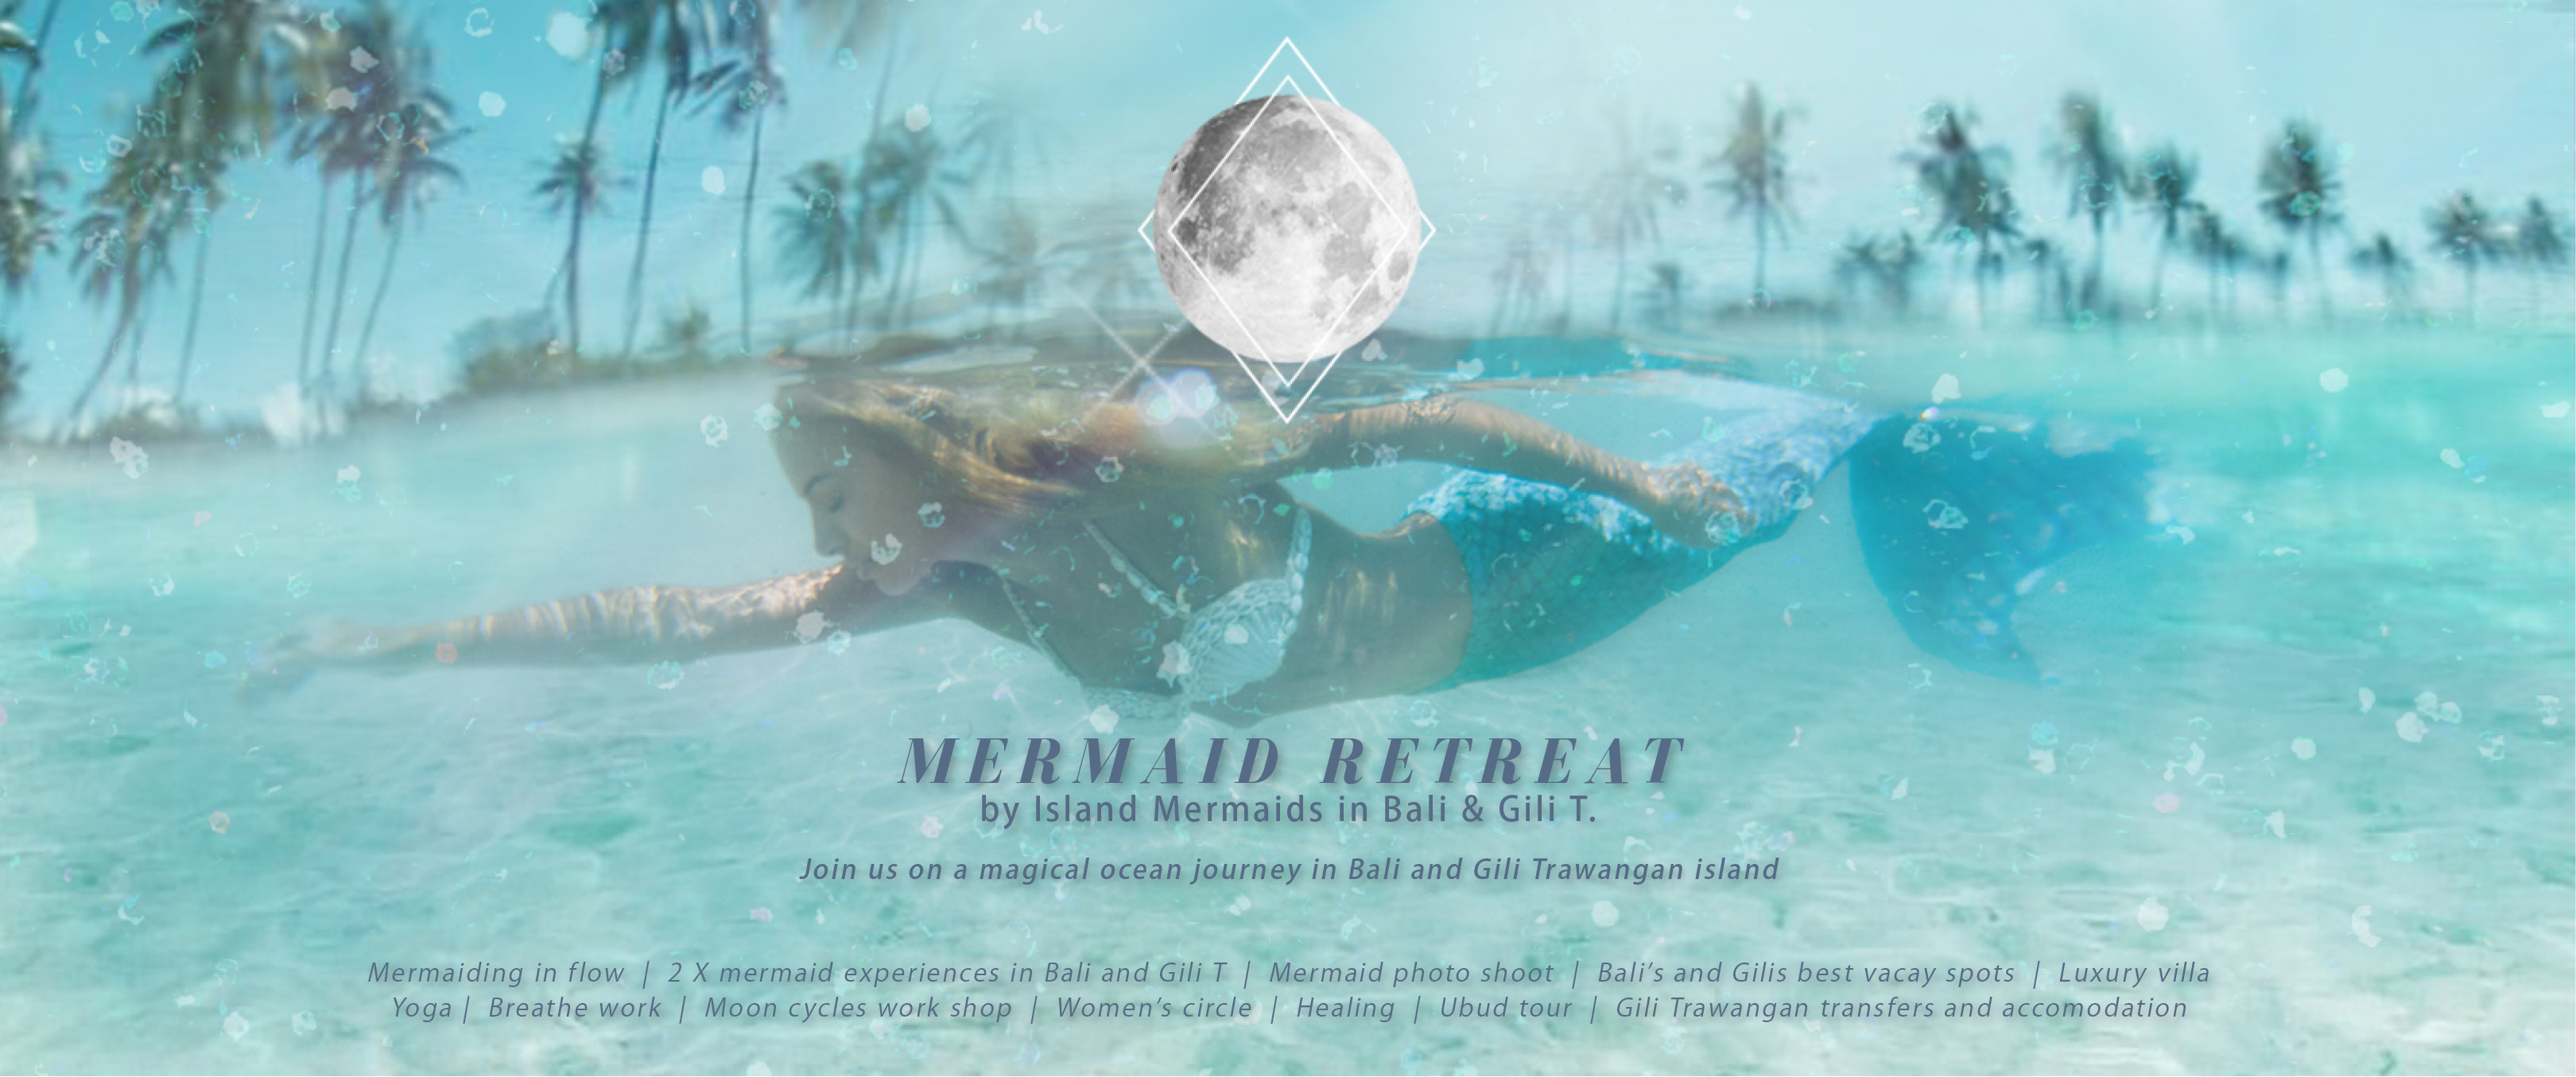 BALI & GILI TRAWANGAN MERMAID RETREAT